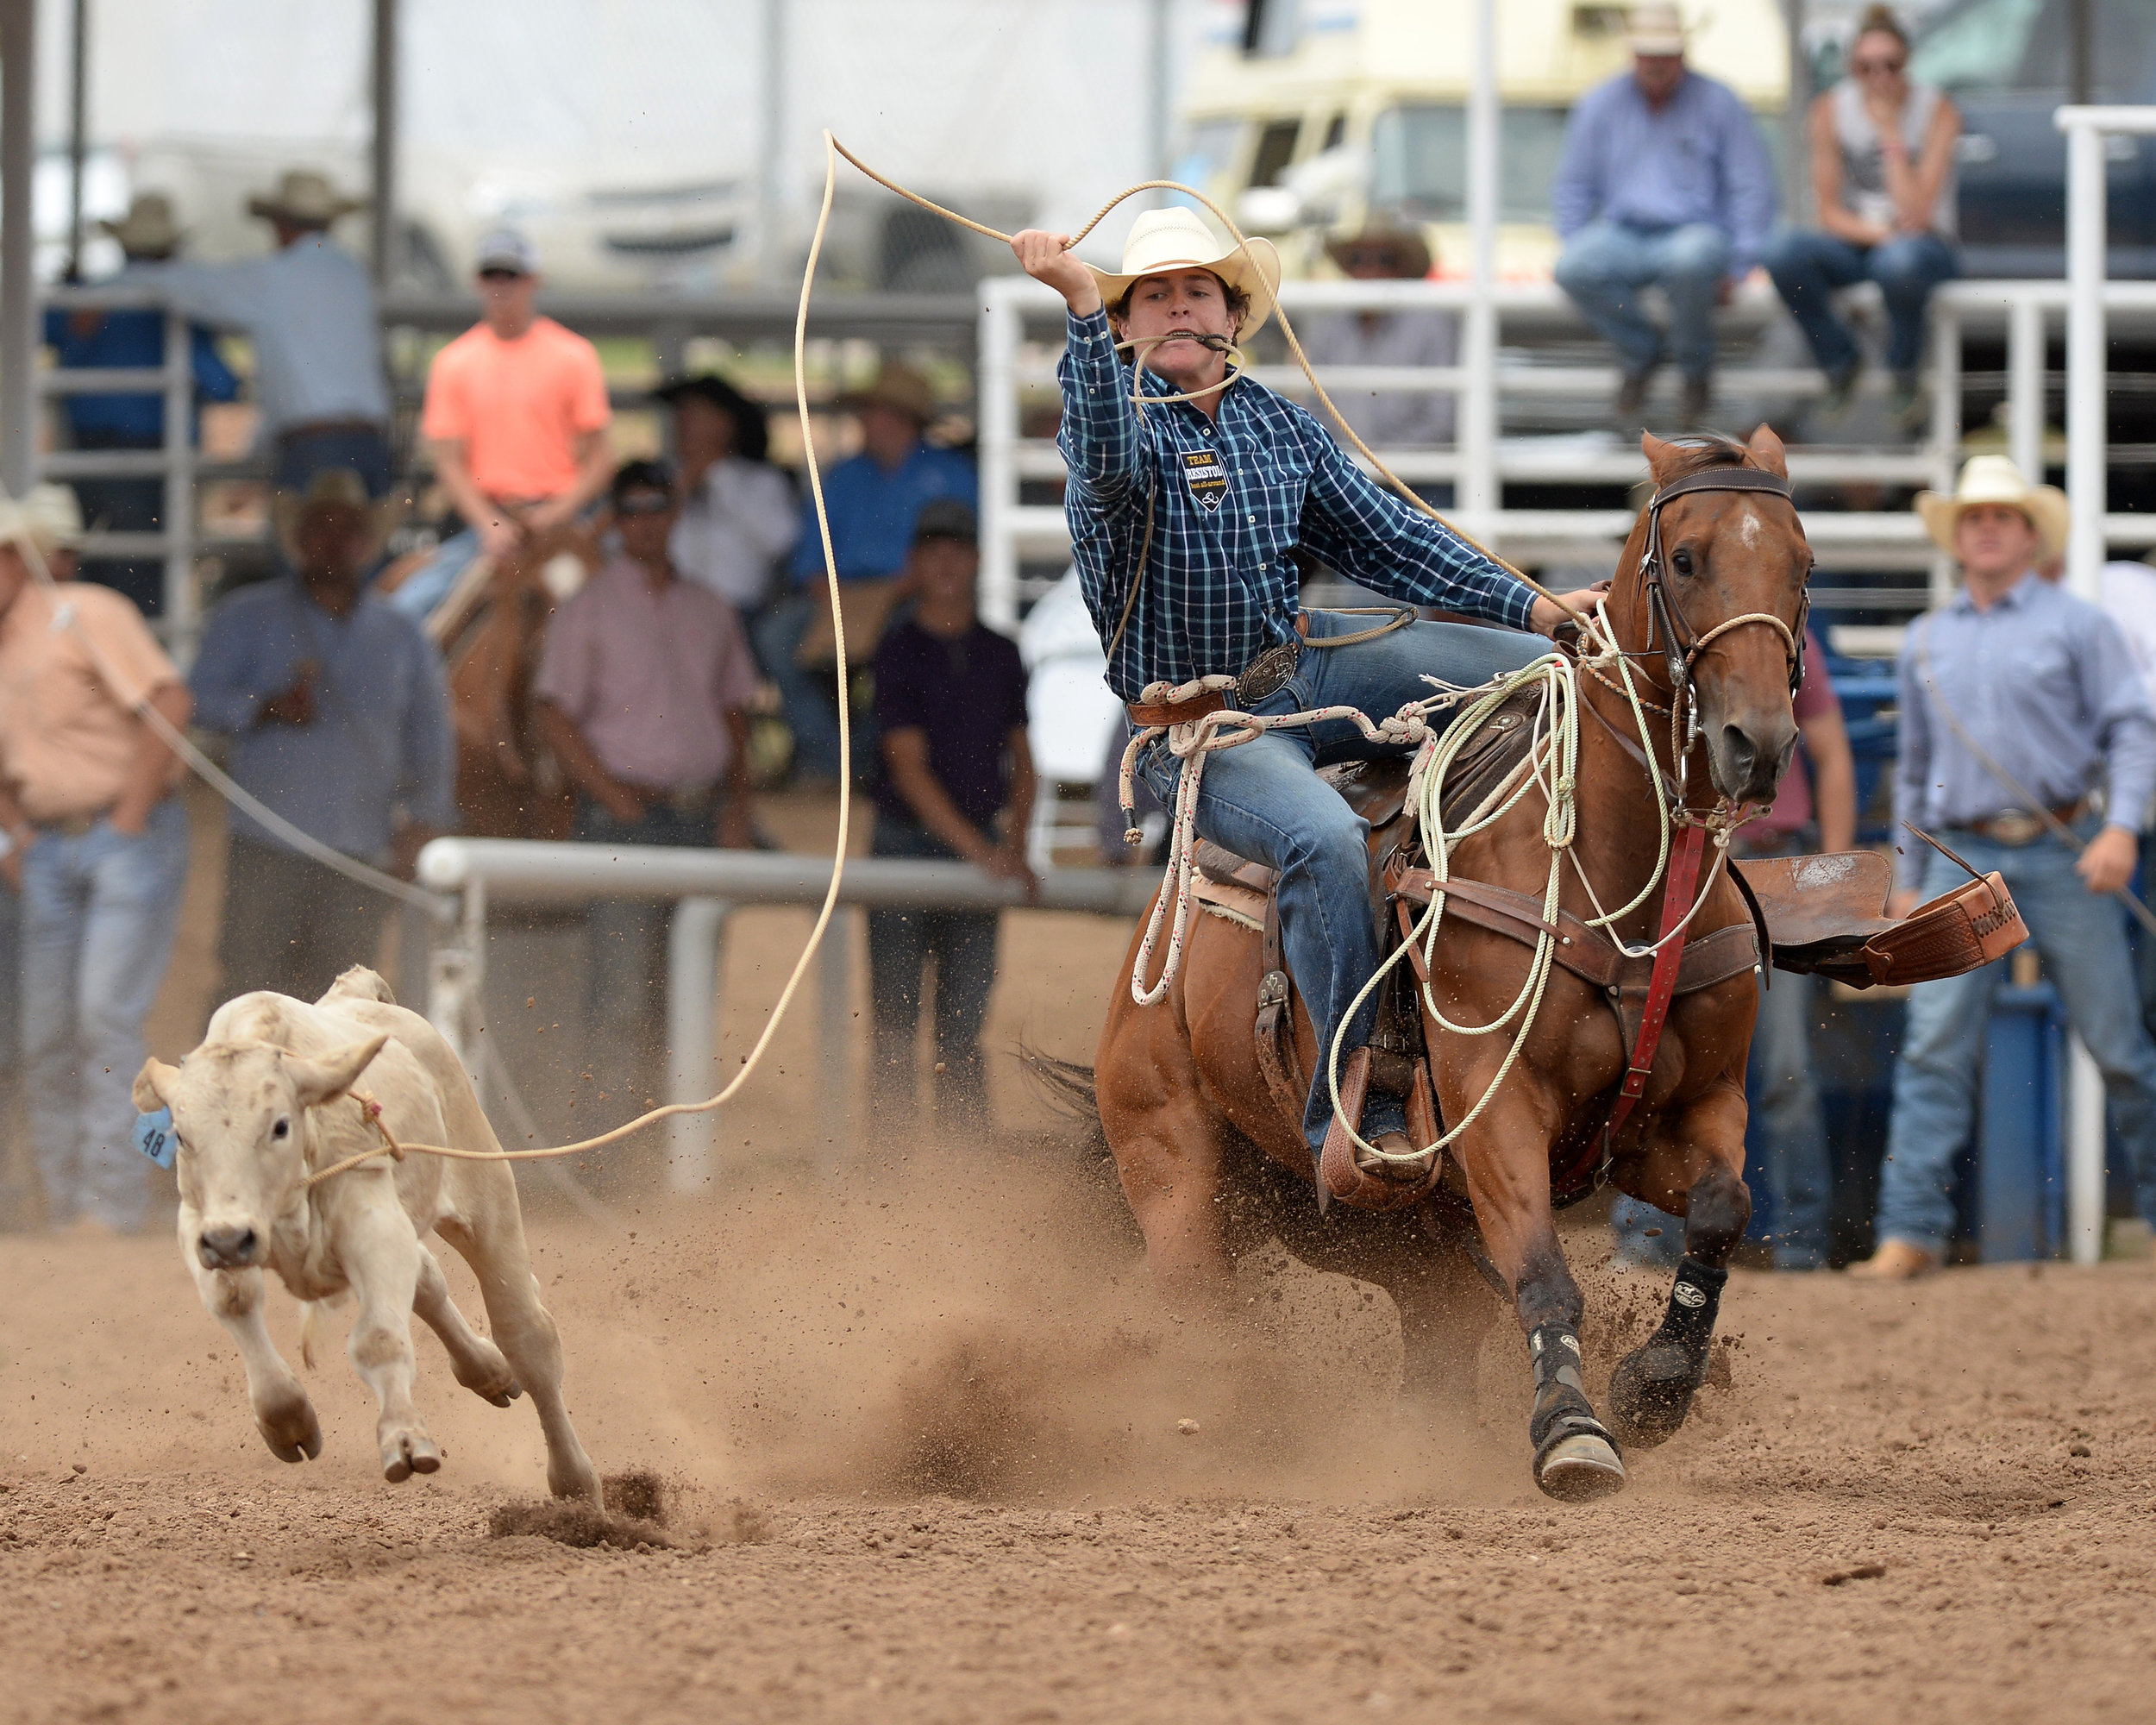 2017 SG Jr Match Calf Roping Quade Hiatt Action.jpg